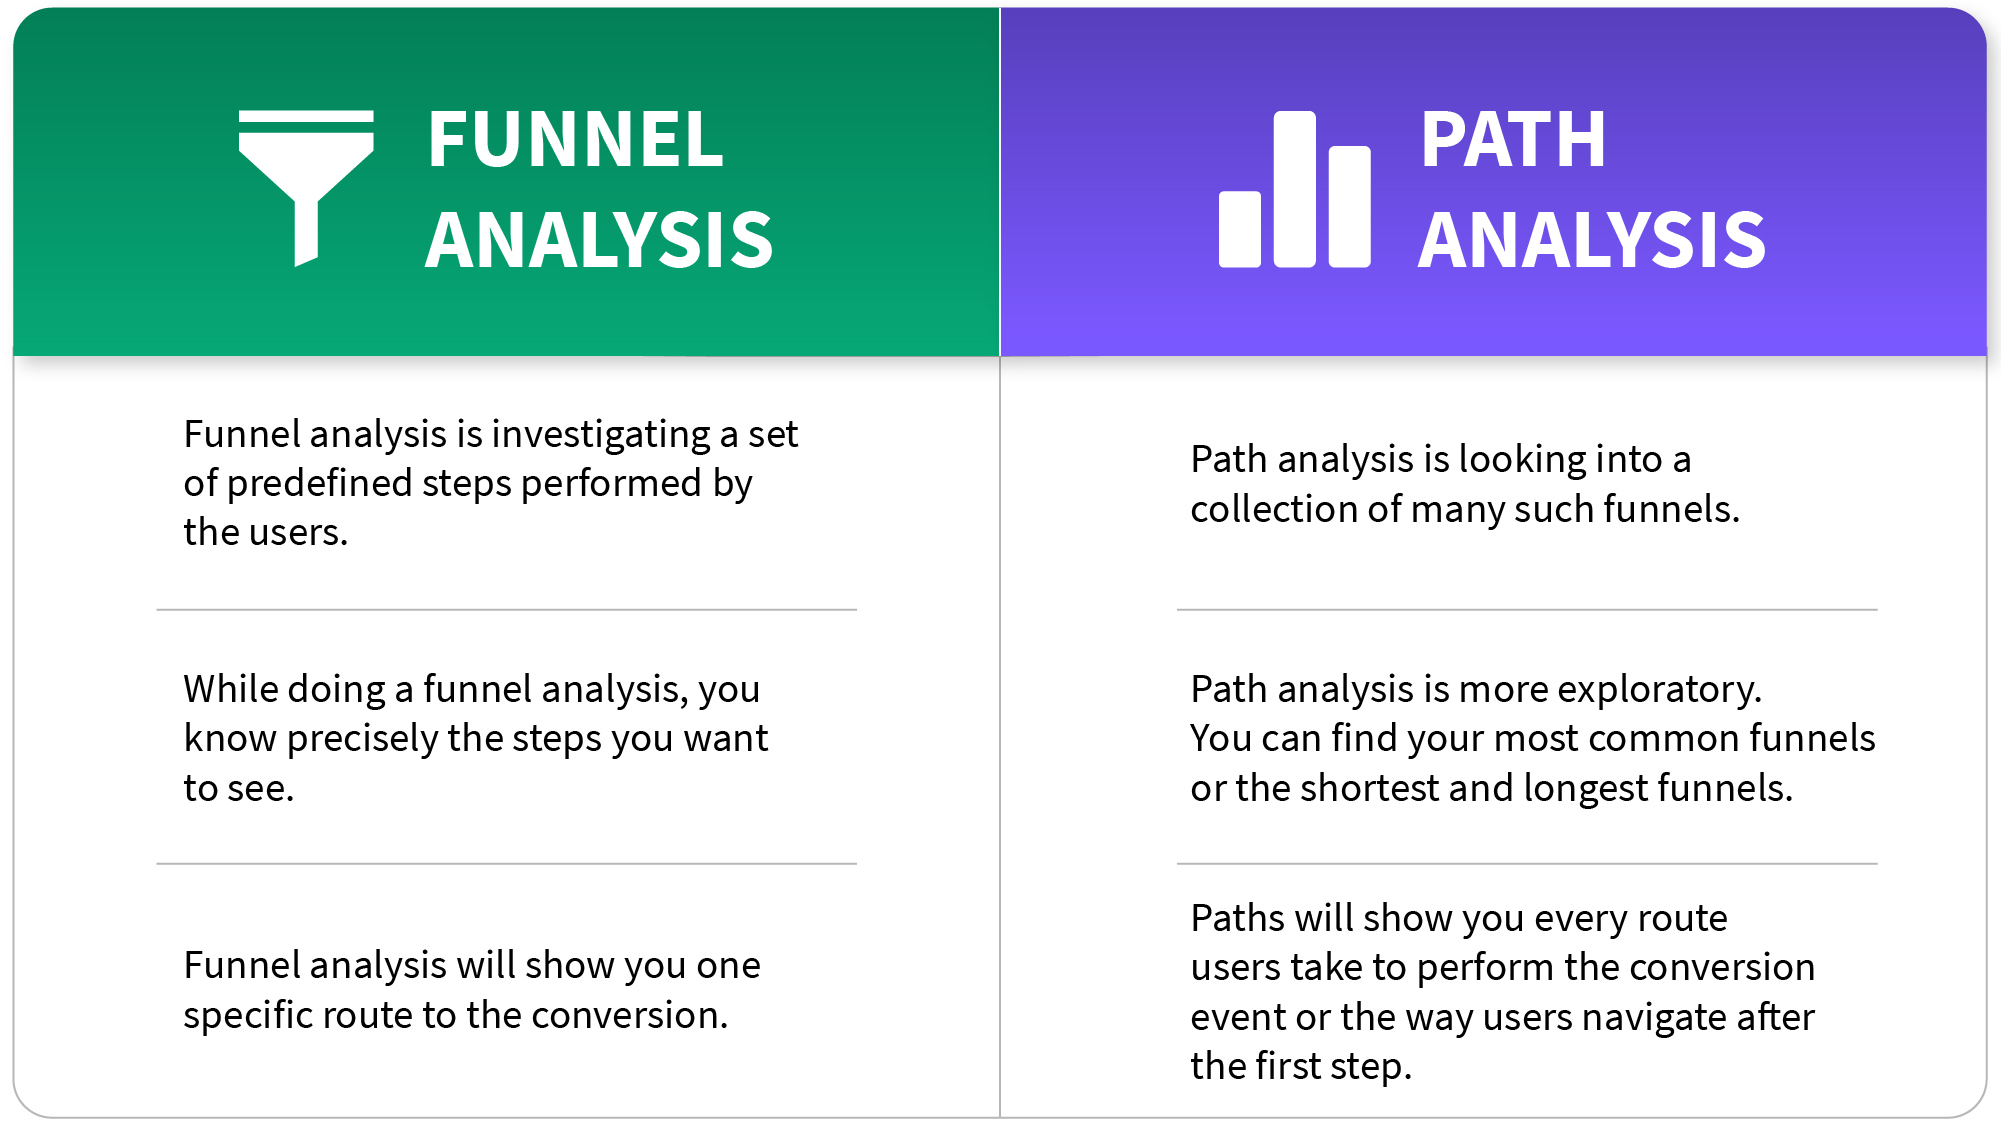 Funnels vs Paths